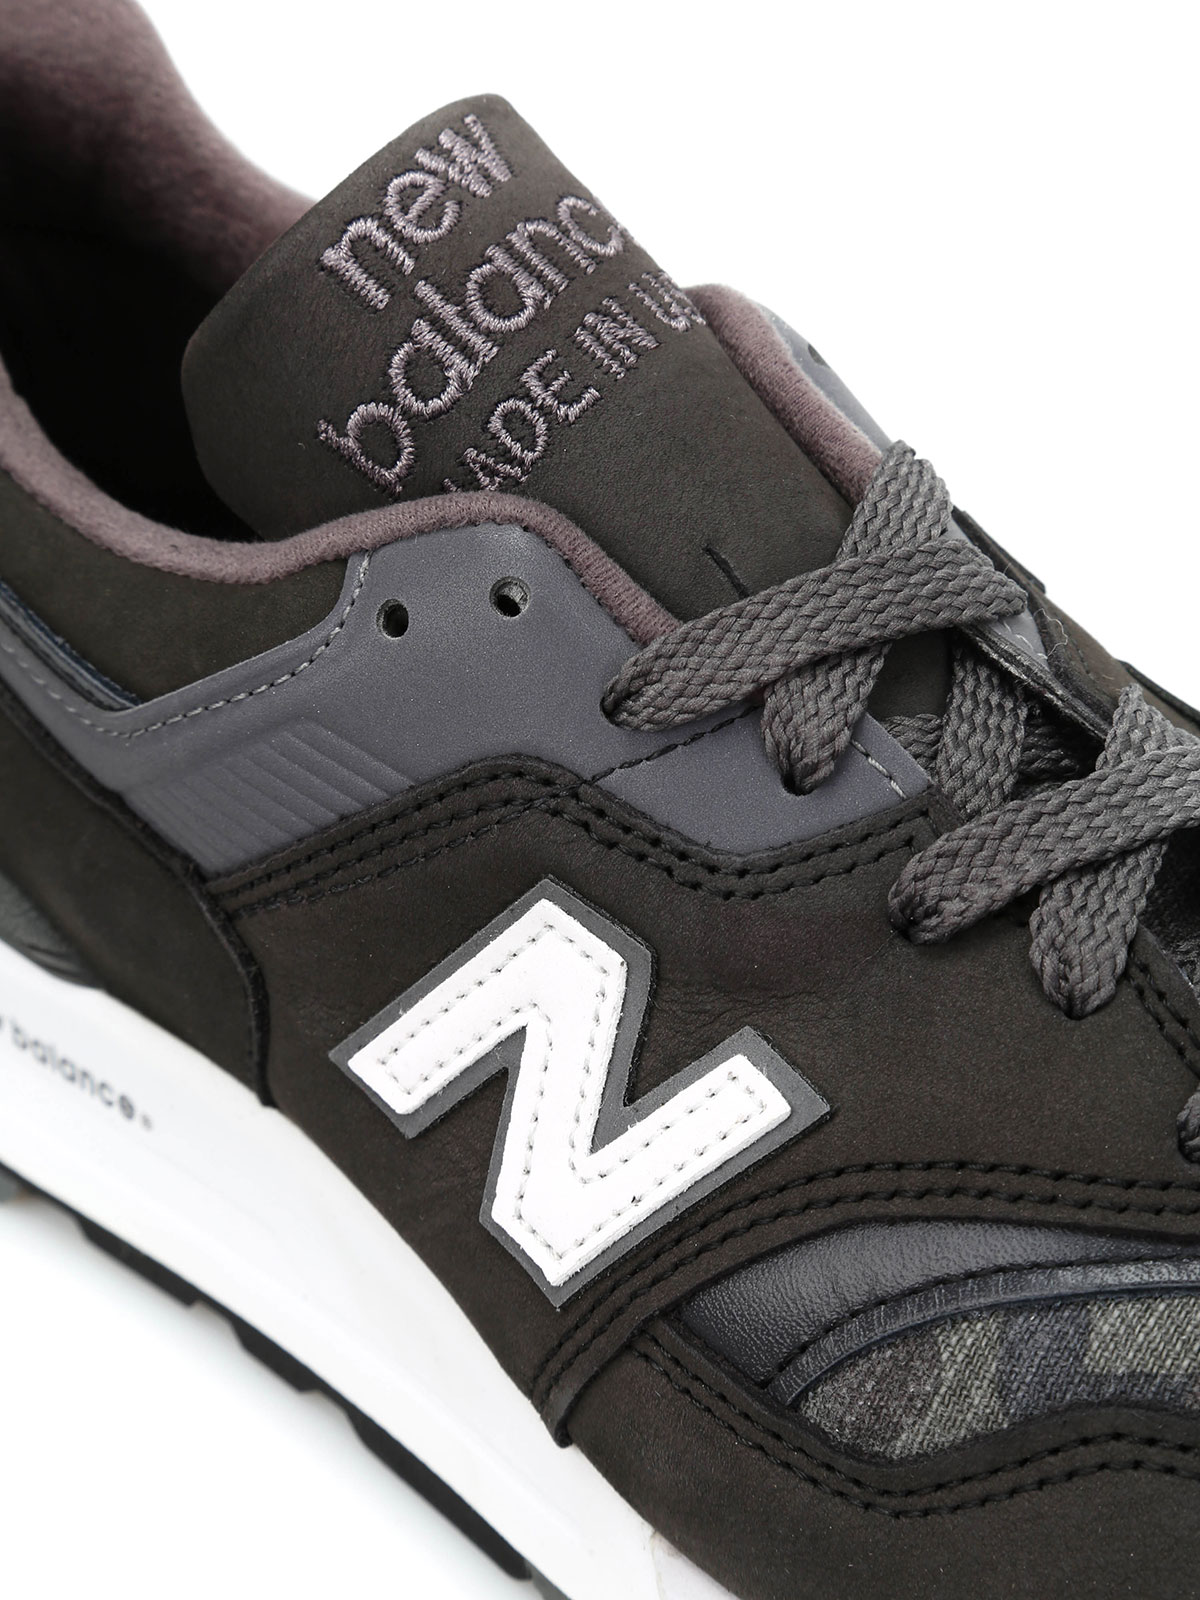 buy popular d1612 dbf0b New Balance - 997 Age of Exploration sneakers - اسپرت ...